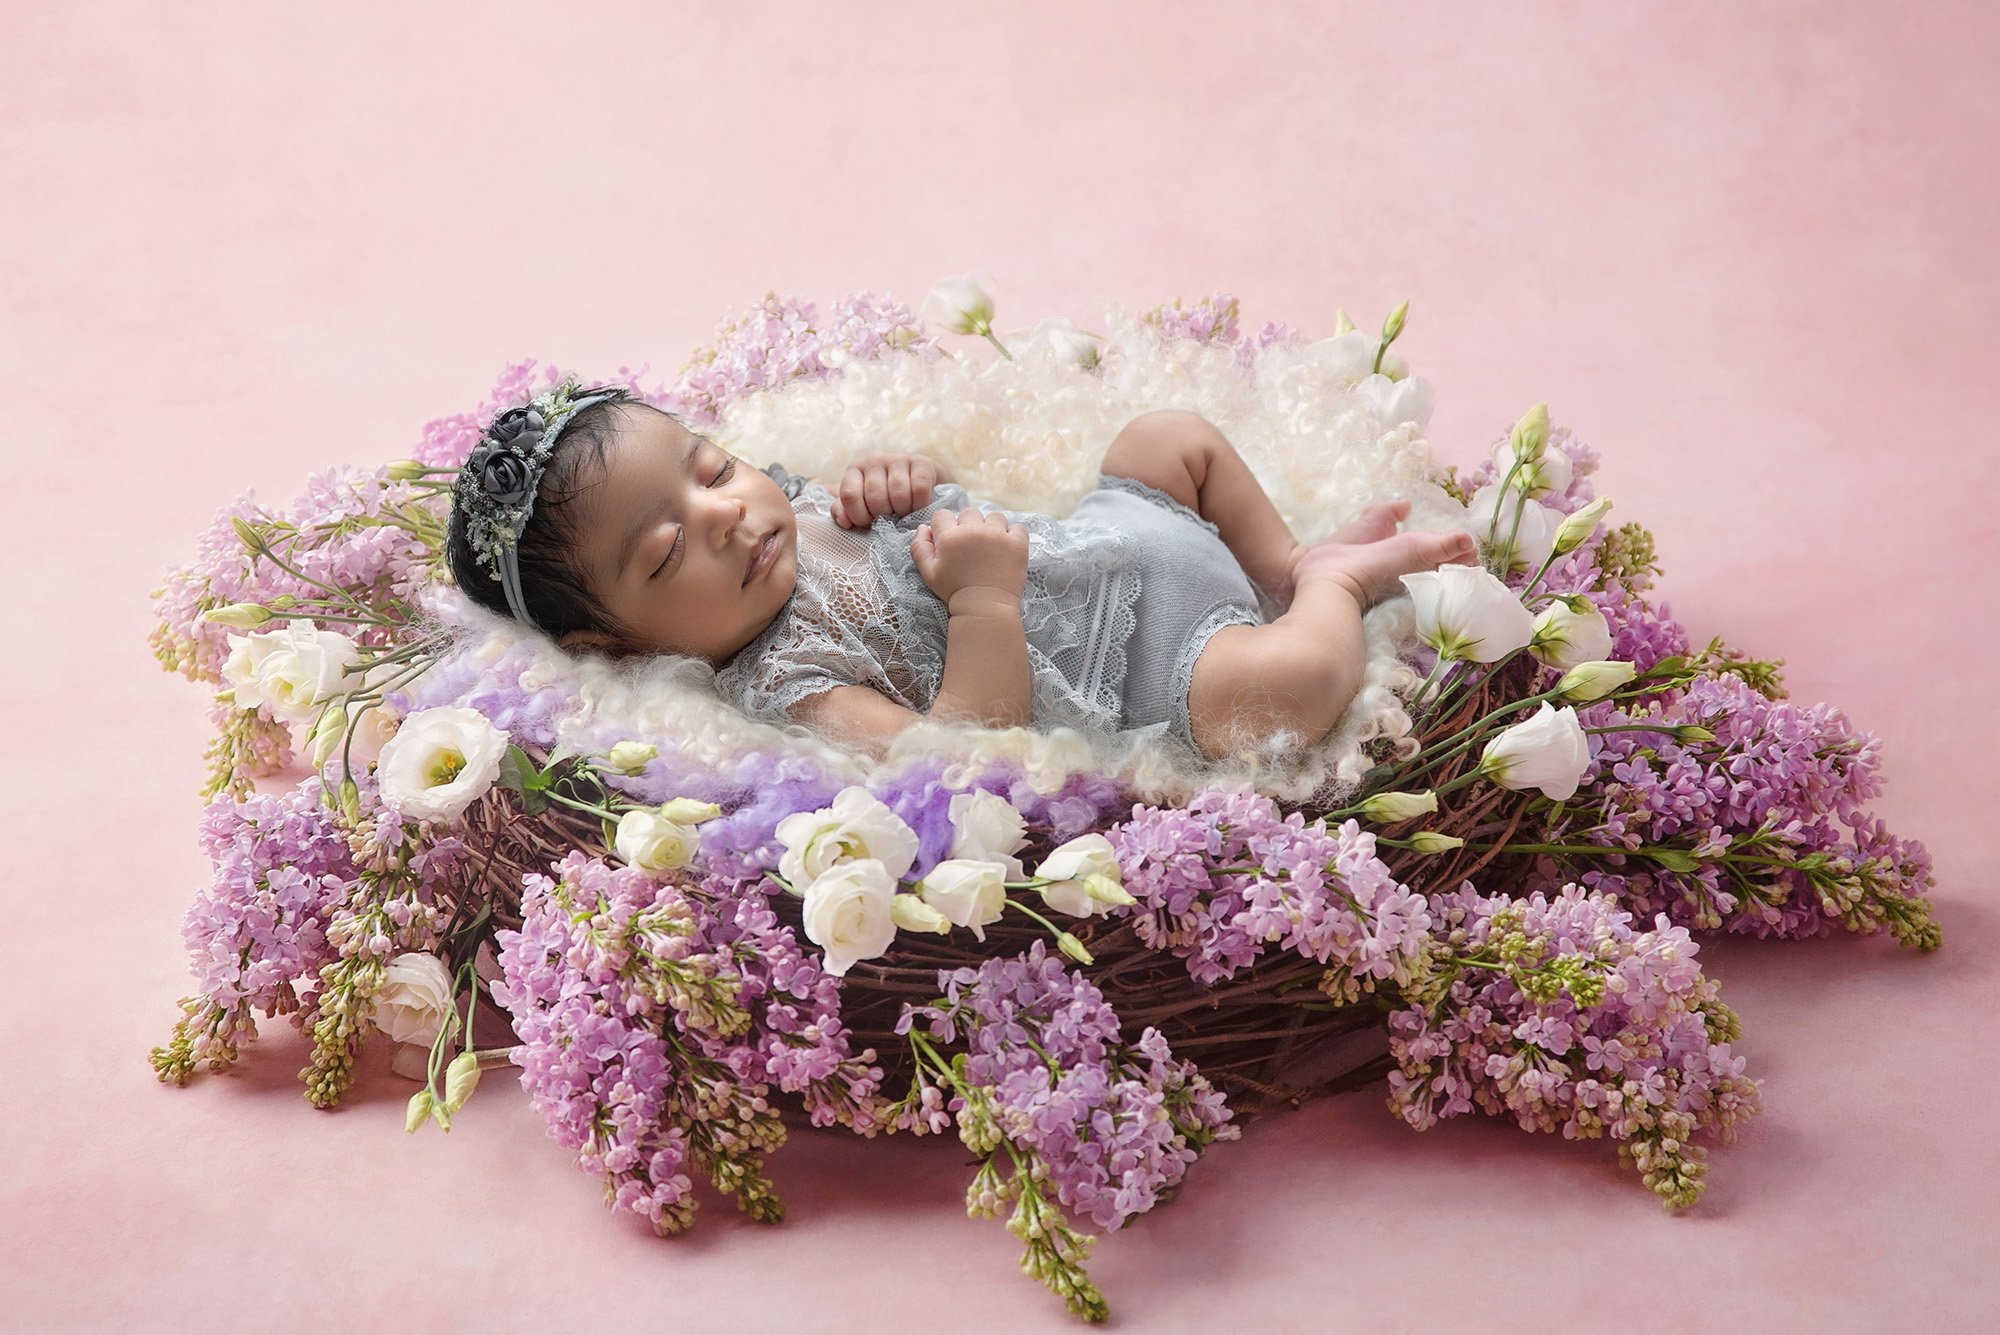 newborn baby girl in laced grey dress sound asleep on top of a purple and white floral wreath with fuzzy purple and white blankets on pink background